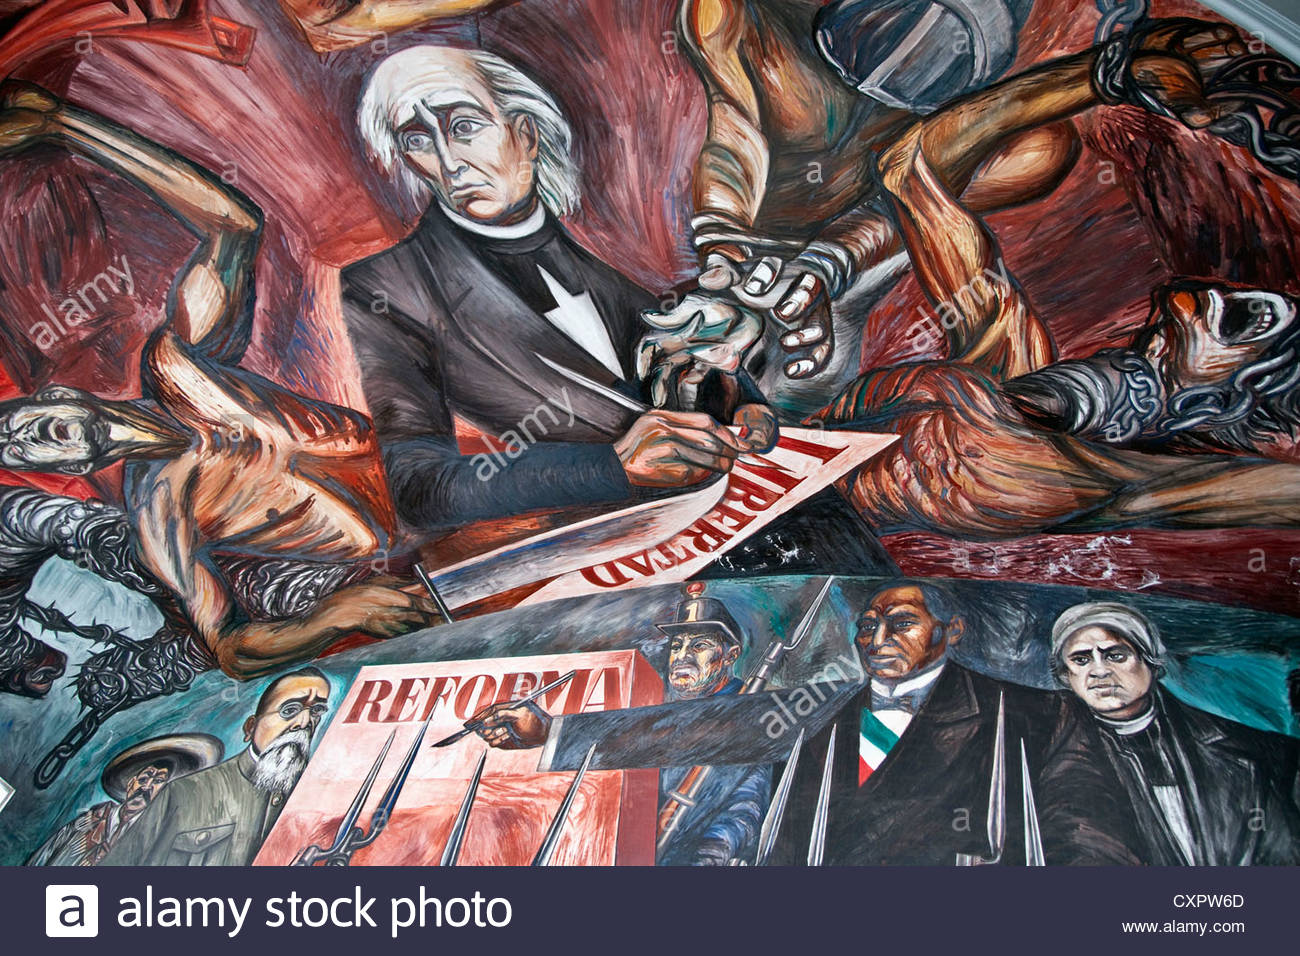 Fresco mural of Reformers of Jalisco by Jose Clemente Orozco on ...